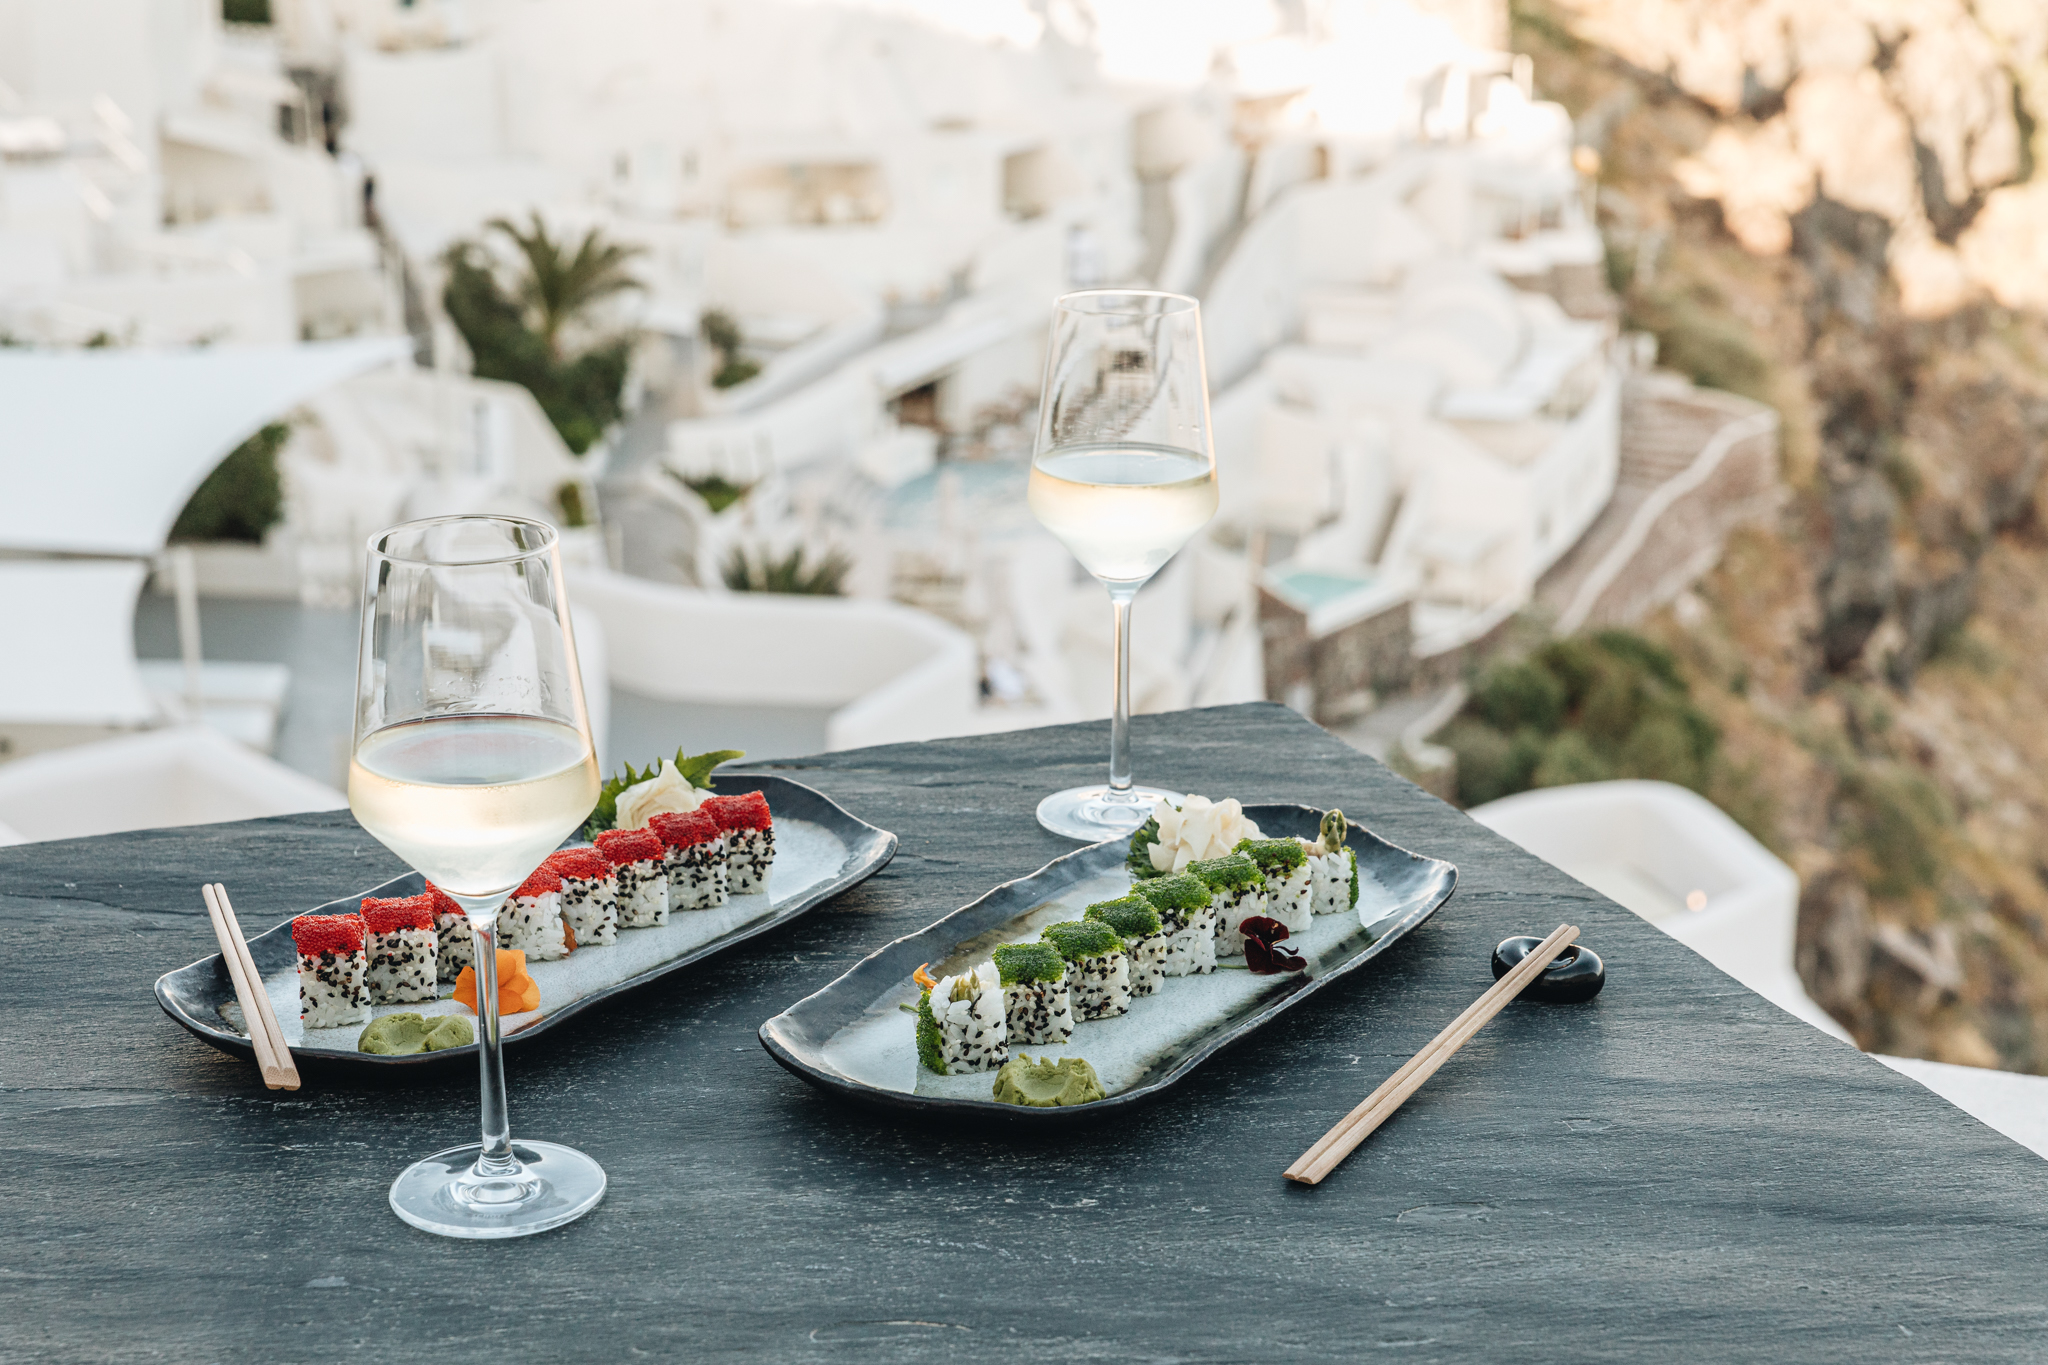 Mystique's fine dining options with views over Santorini's volcano